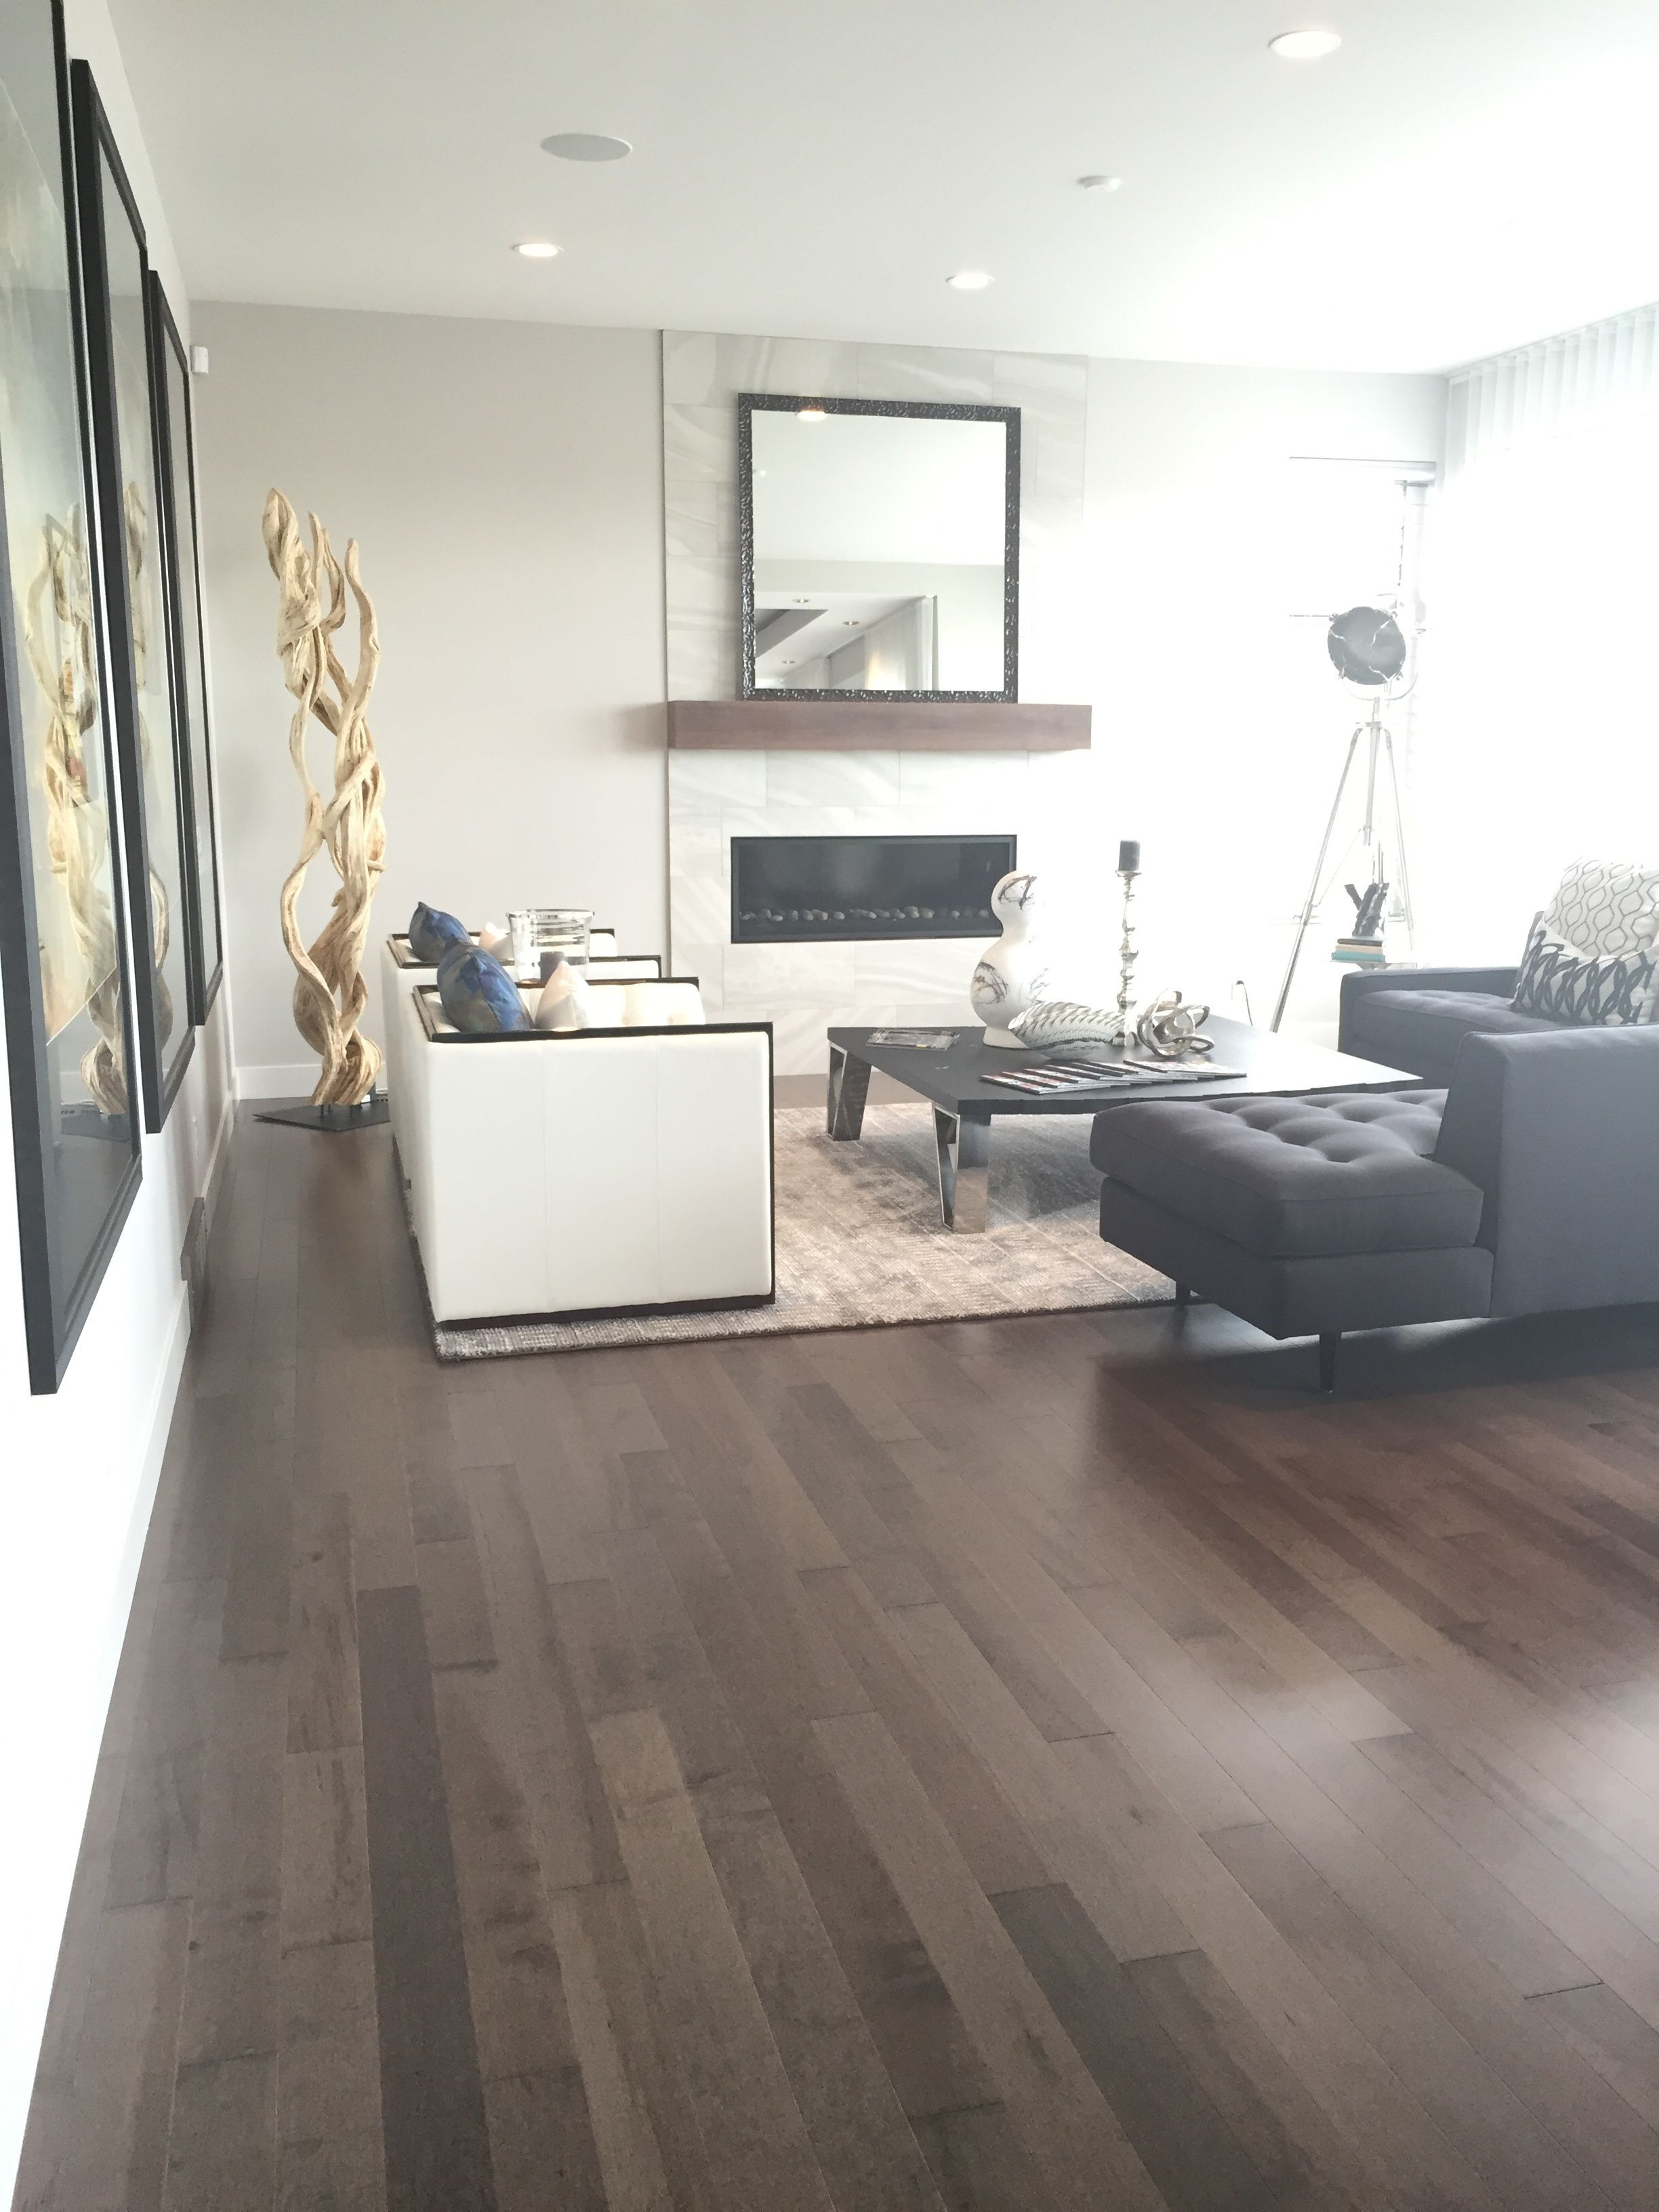 hardwood floor cleaning atlanta ga of smoky grey essential hard maple tradition lauzon hardwood intended for beautiful living room from the cantata showhome featuring lauzons smokey grey hard maple hardwood flooring from the essential collection